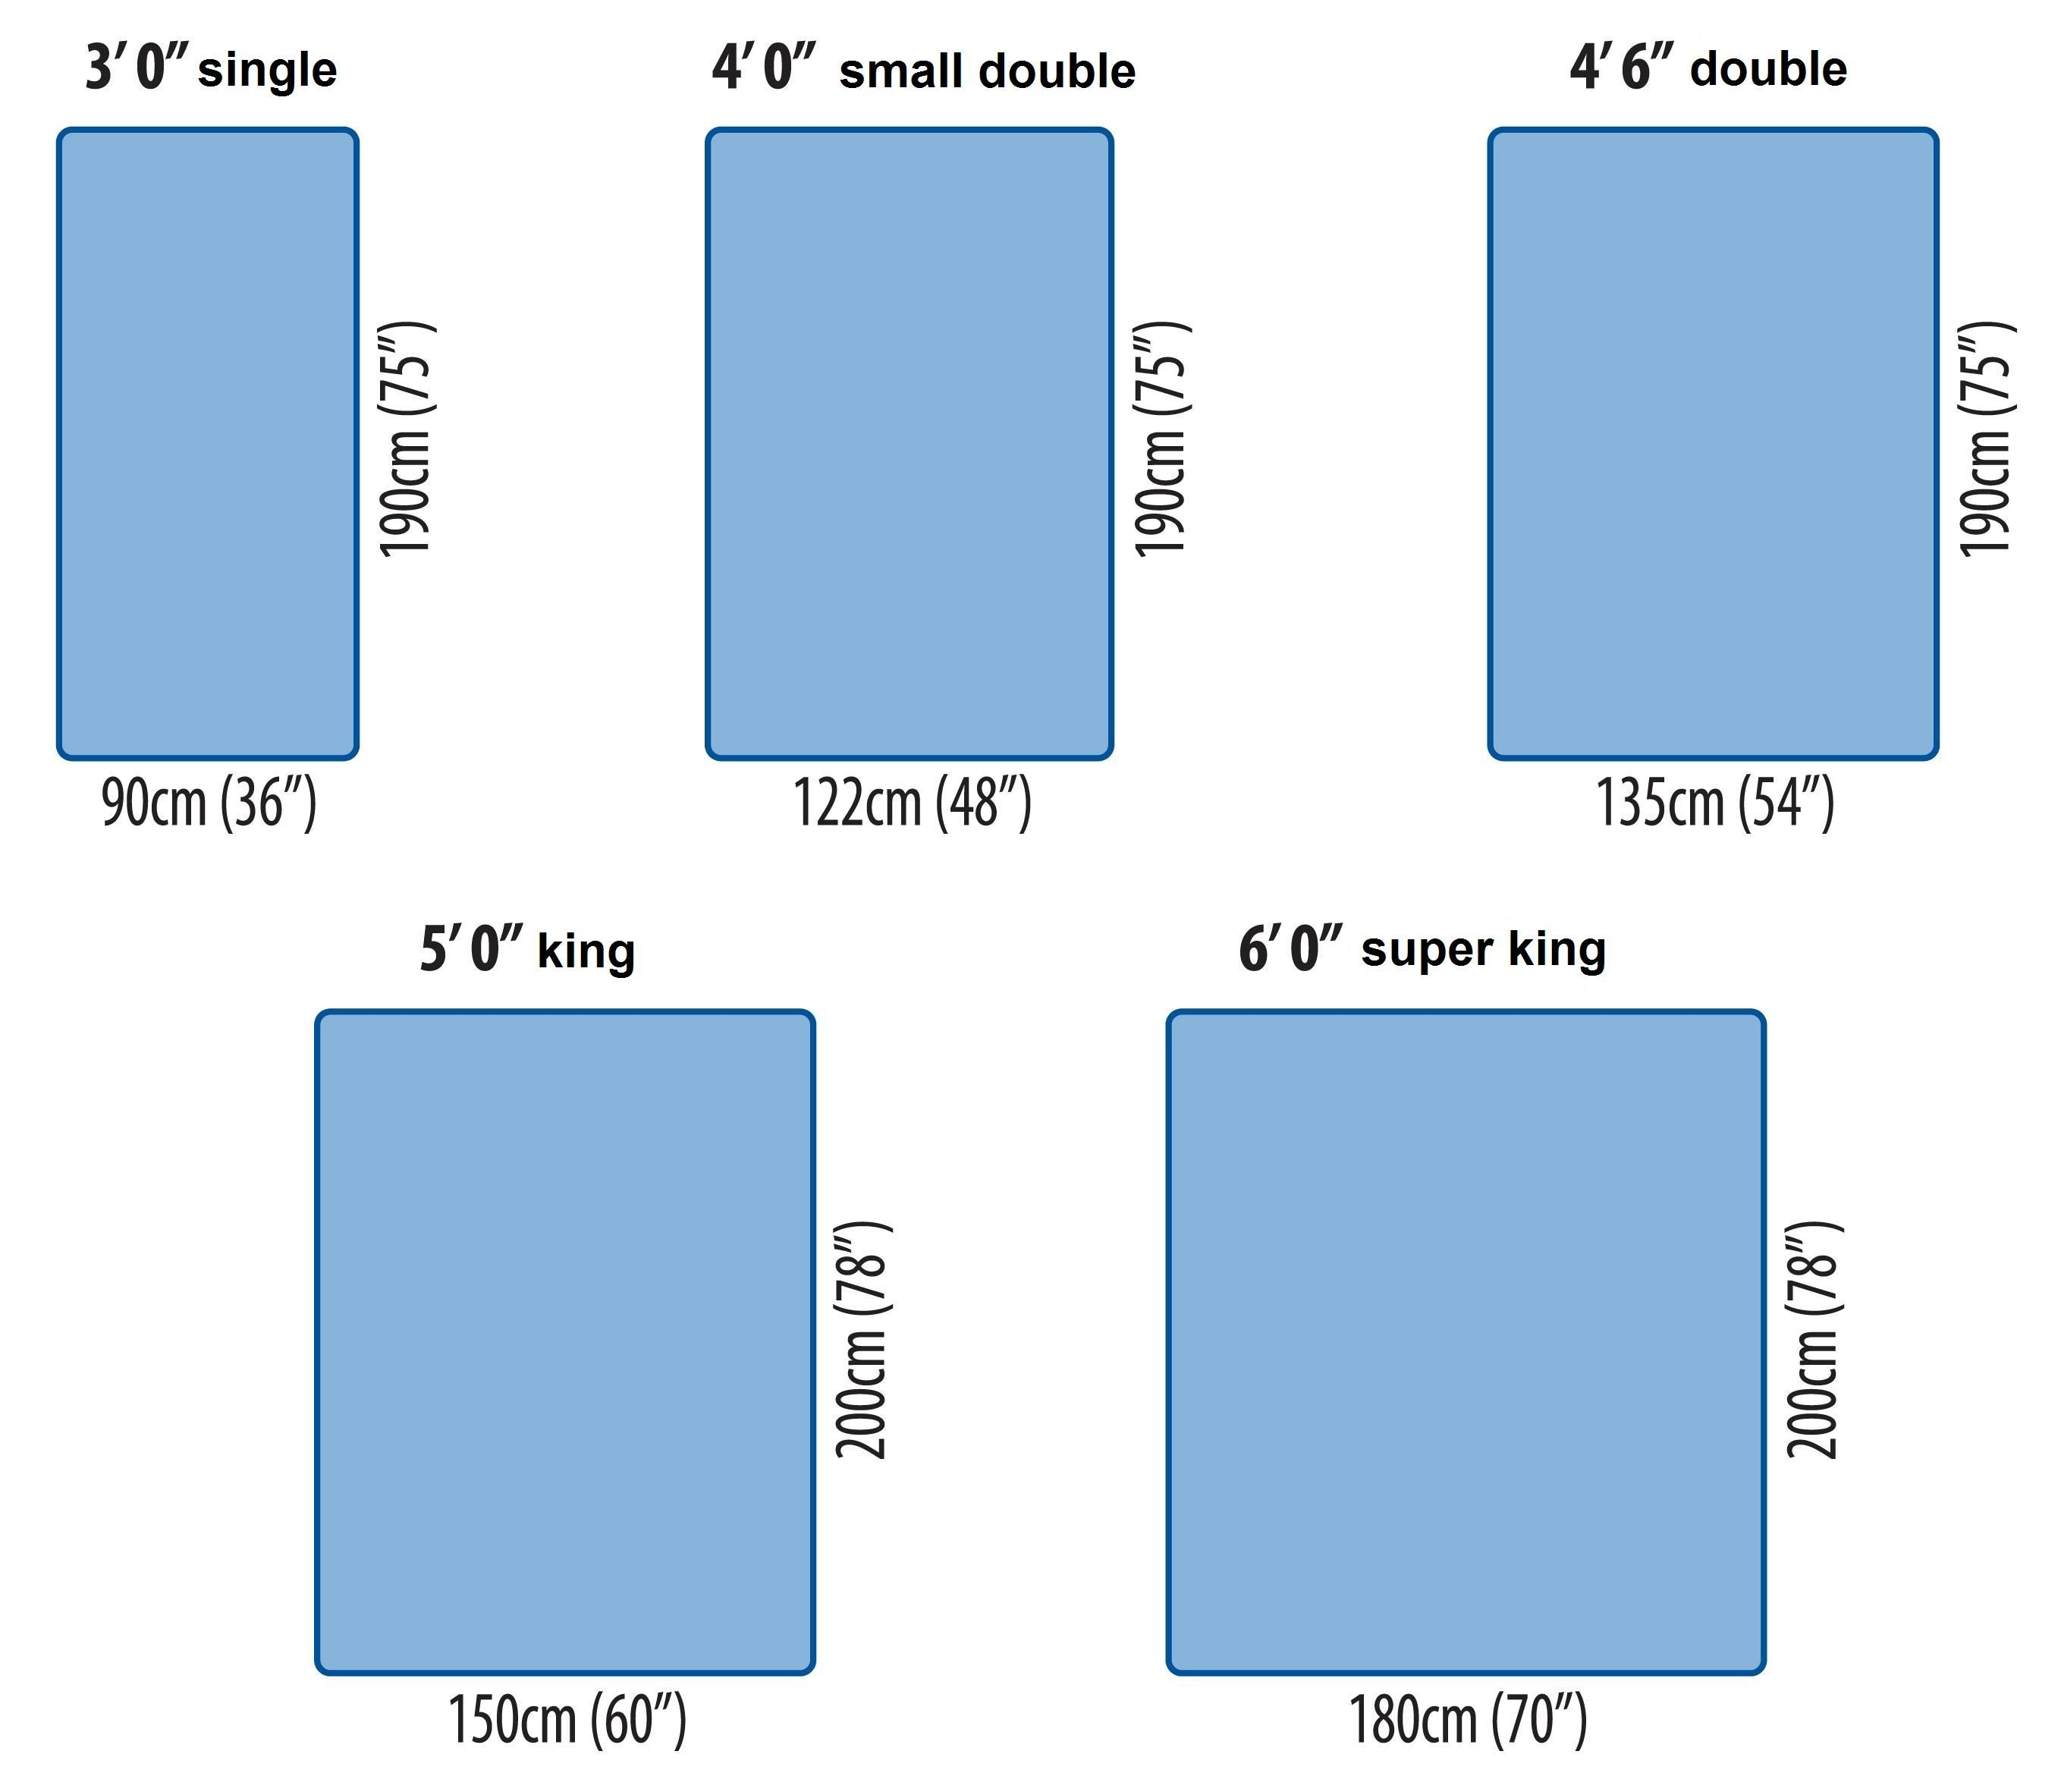 Queen Size Bed Dimensions.Bed Sizes Are Confusing Interior Design Major King Size